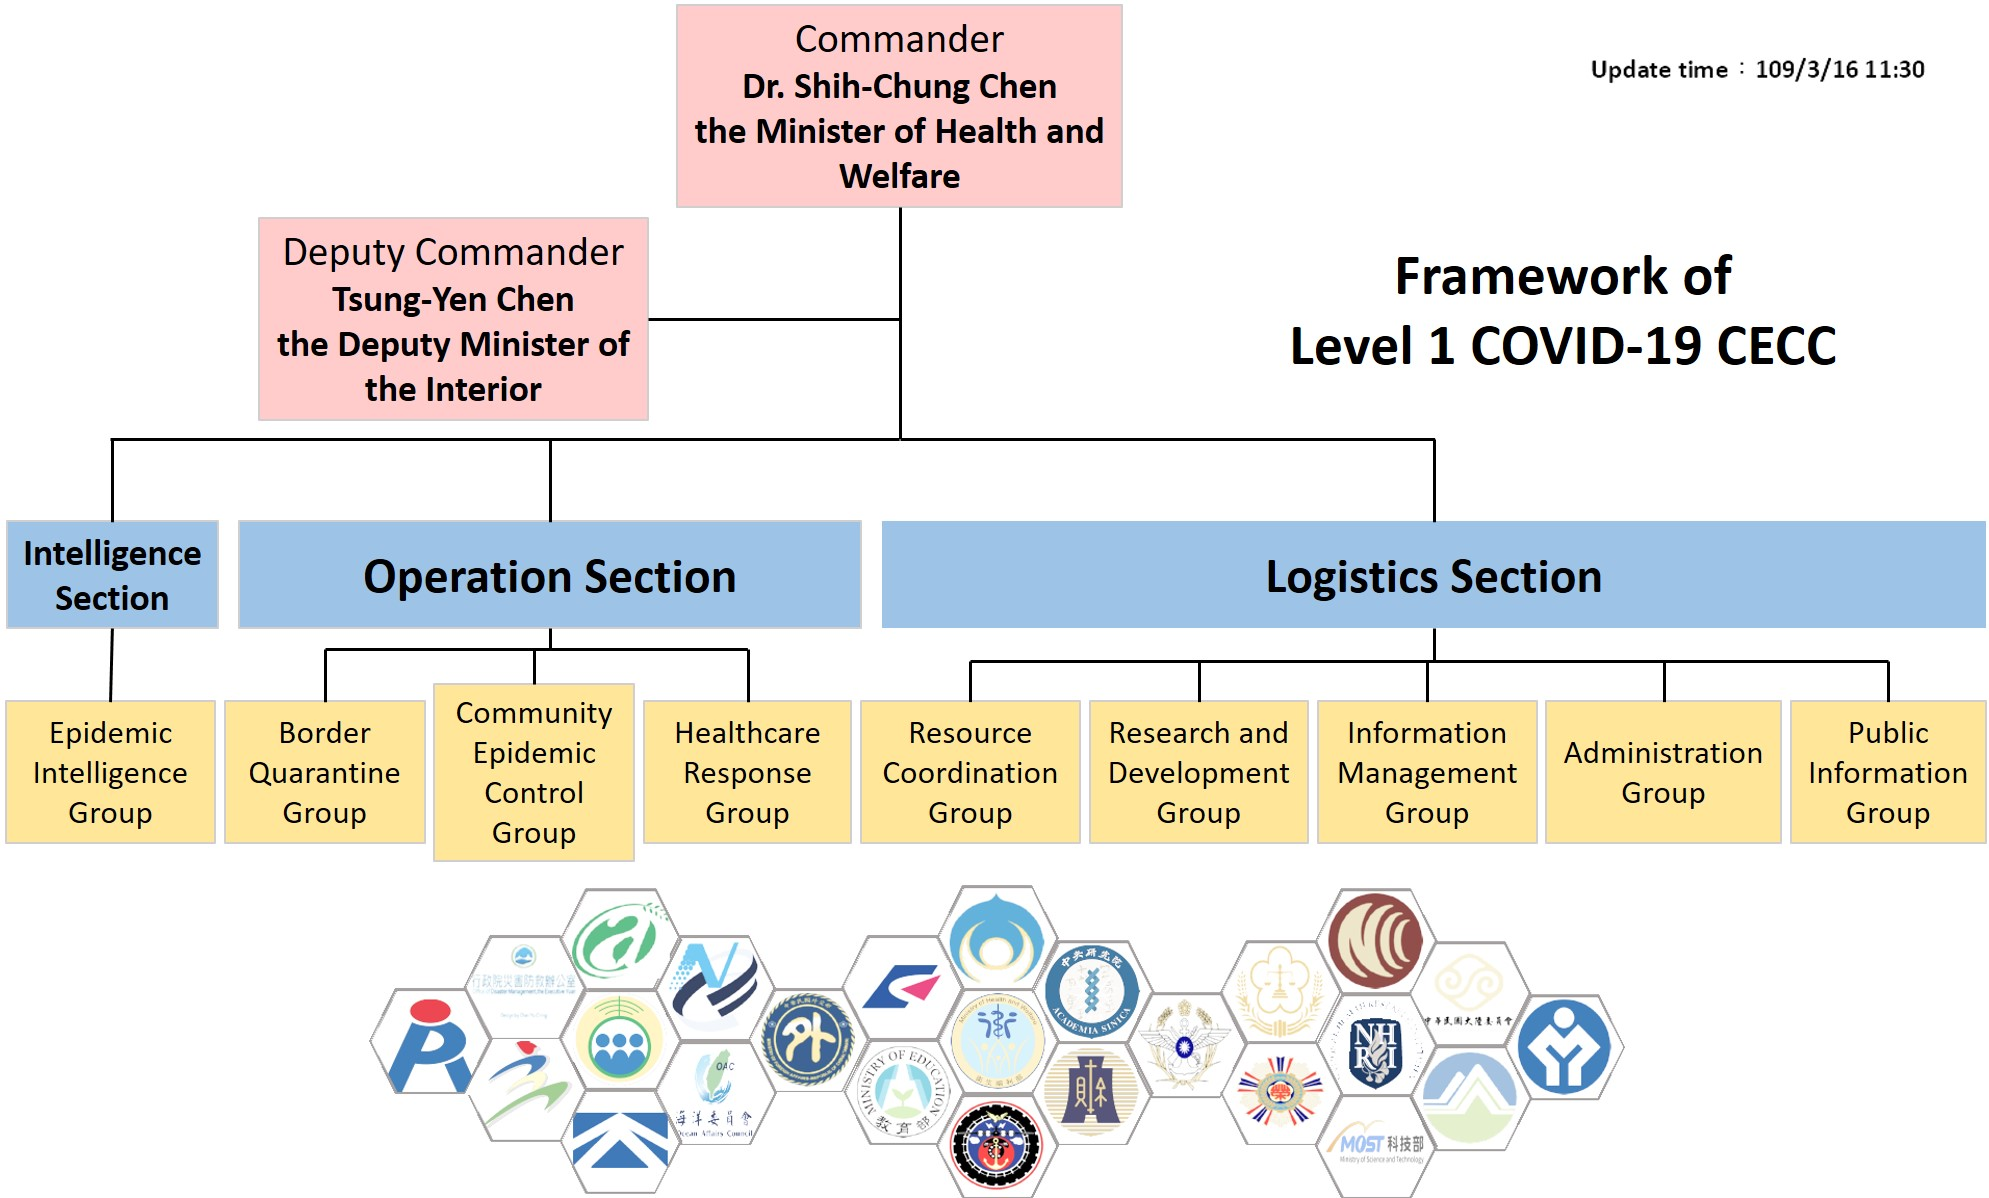 Framework of Level 1 COVID-19 of the Central Epidemic Command Center